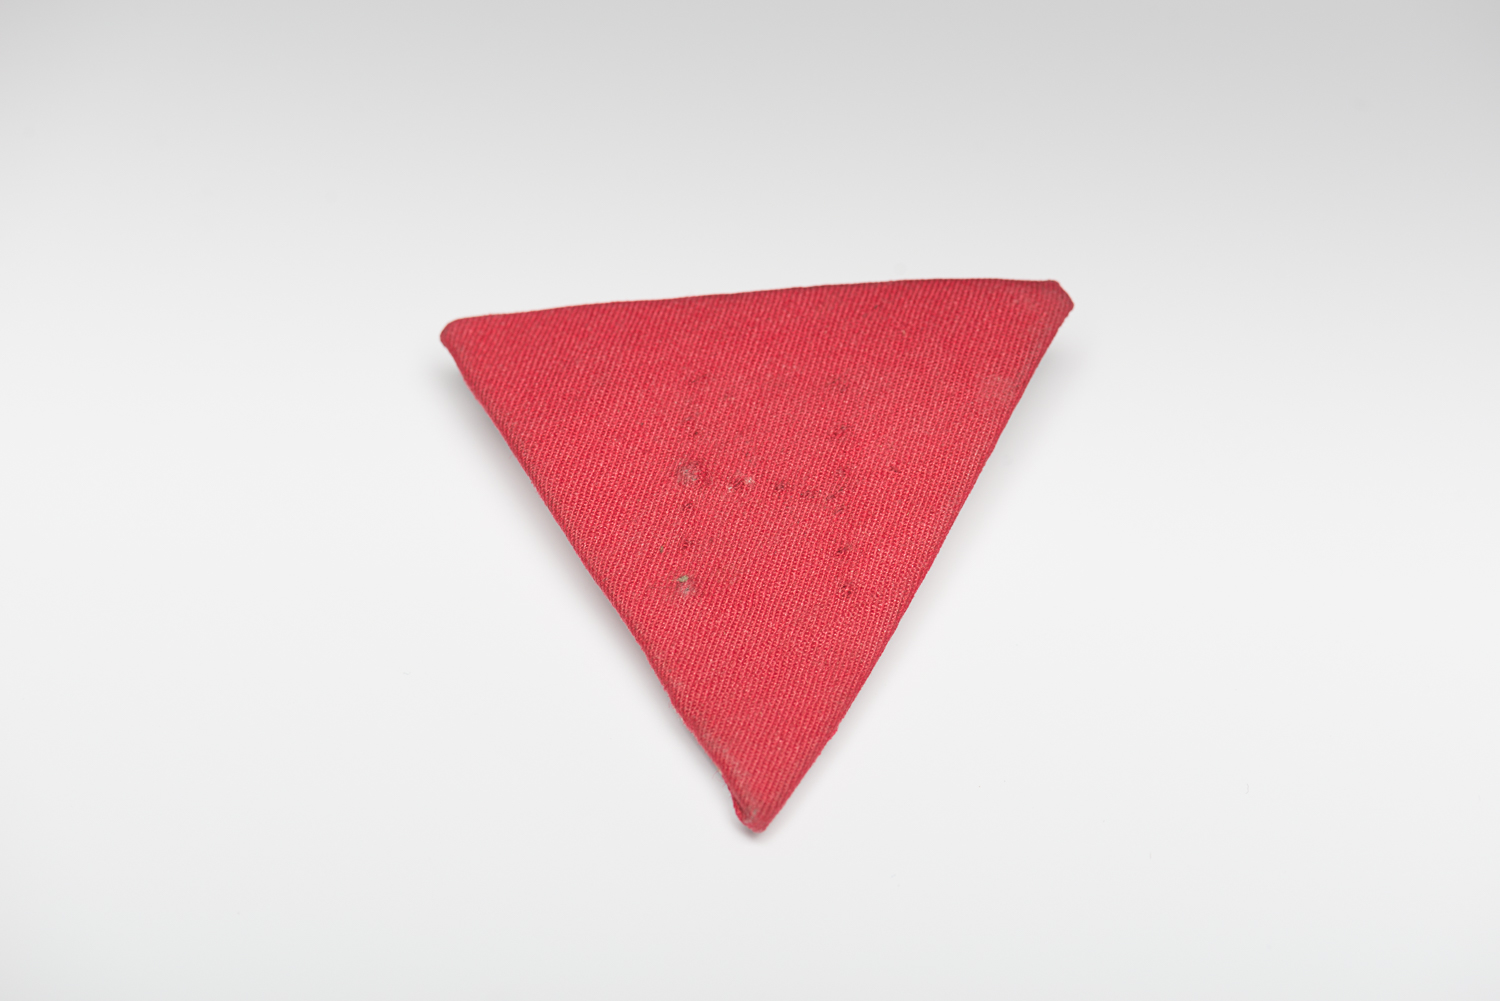 This red triangular identification badge was used to identify political prisoners in Nazi concentration camps.